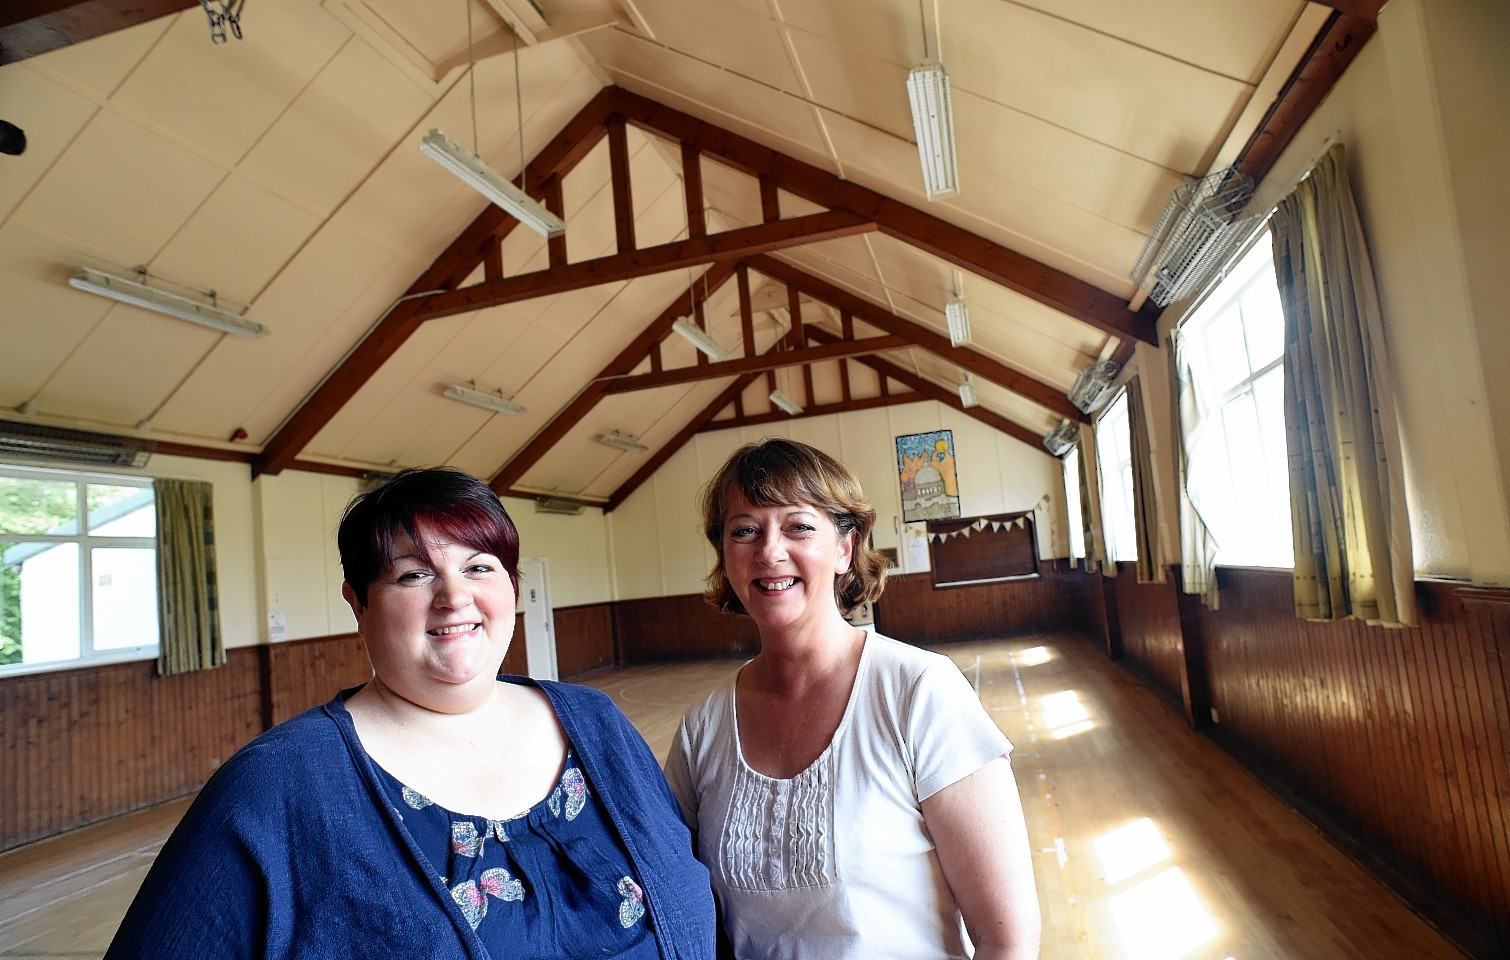 Renovation work has now started at Logie Durno Village Hall, thanks to the local community, who managed to secure £25,000 funding for the project